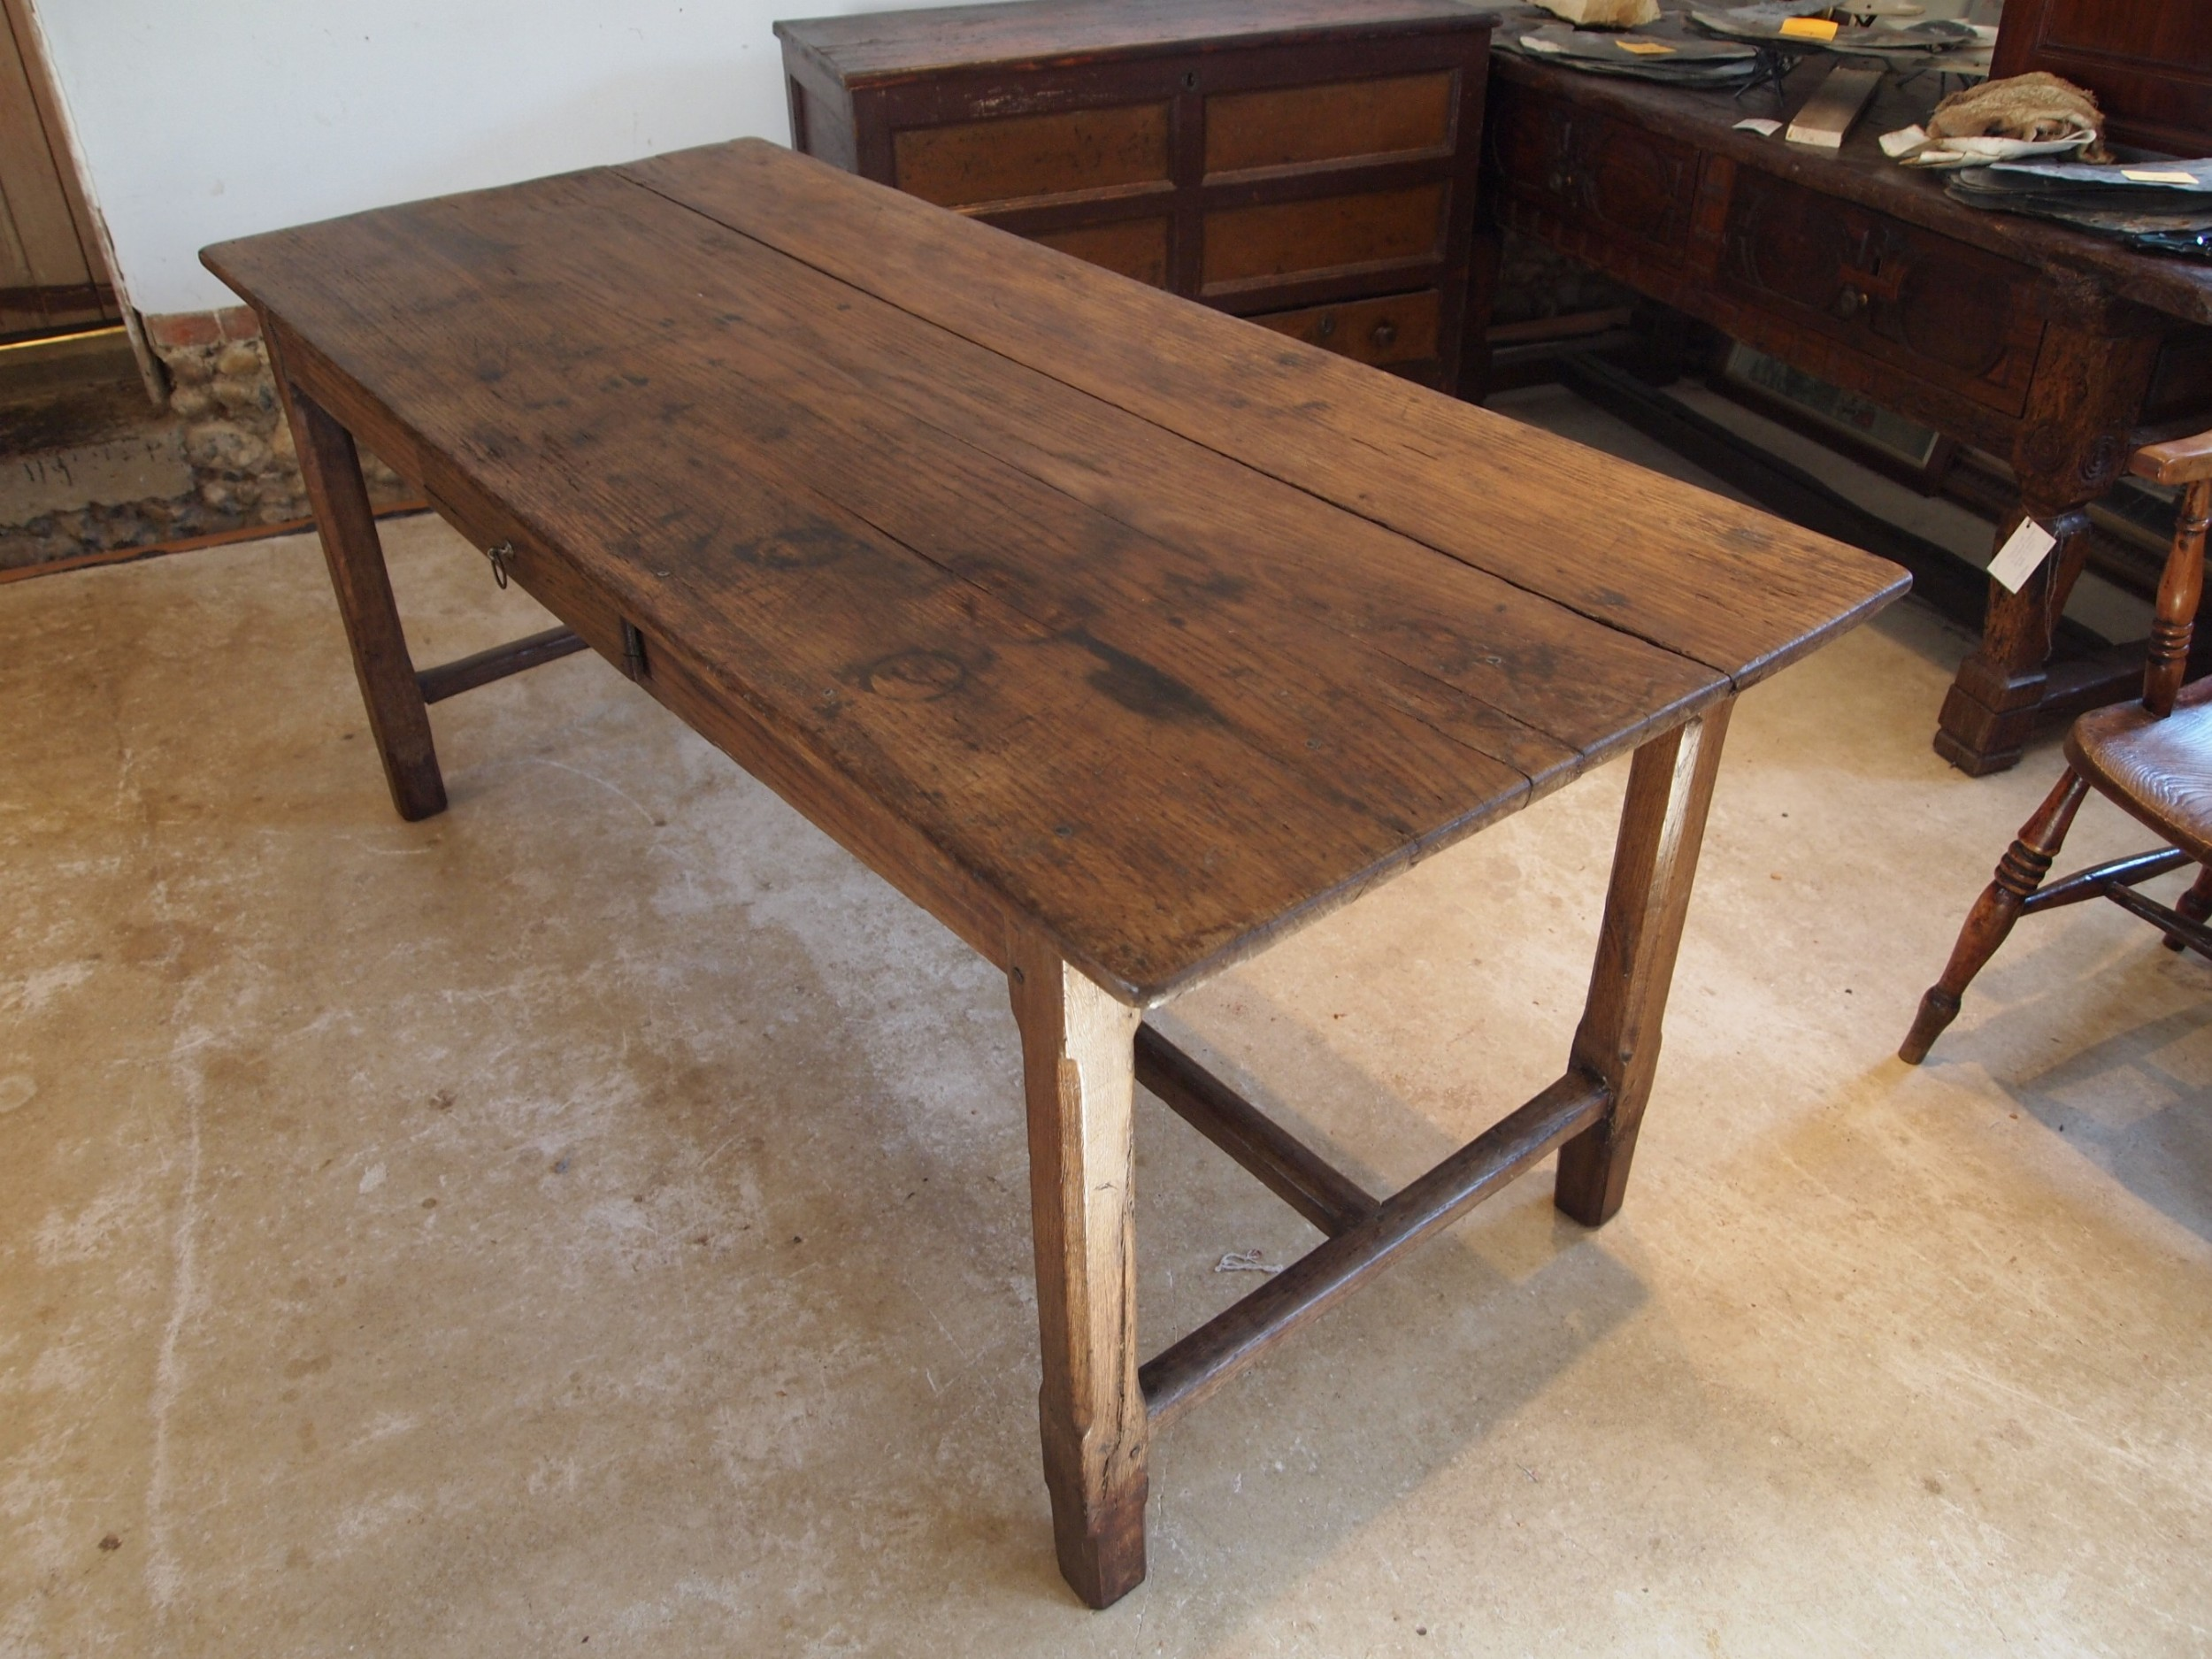 table french oak refectory farmhouse dining c1800